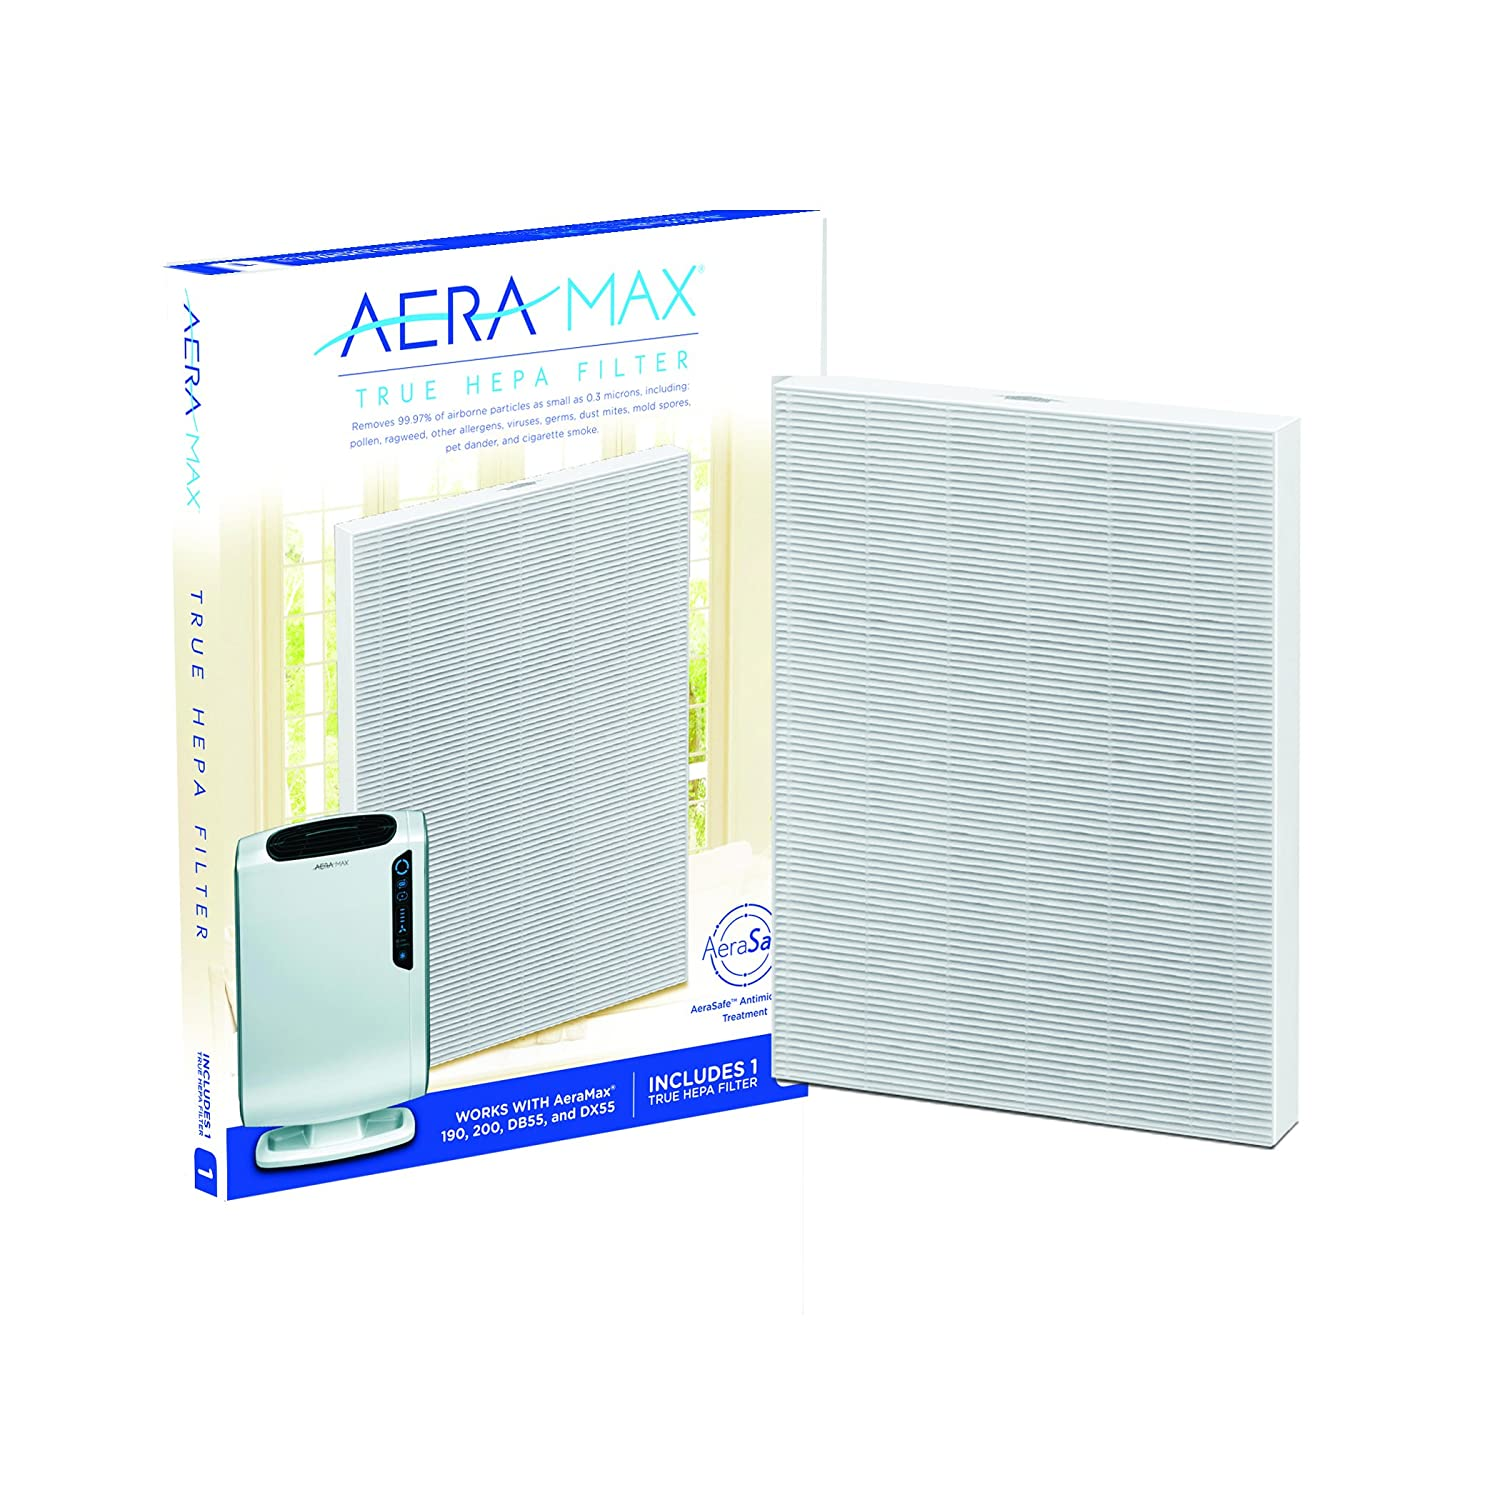 Fellowes AeraMax DX95 True HEPA Filter-White 9287201